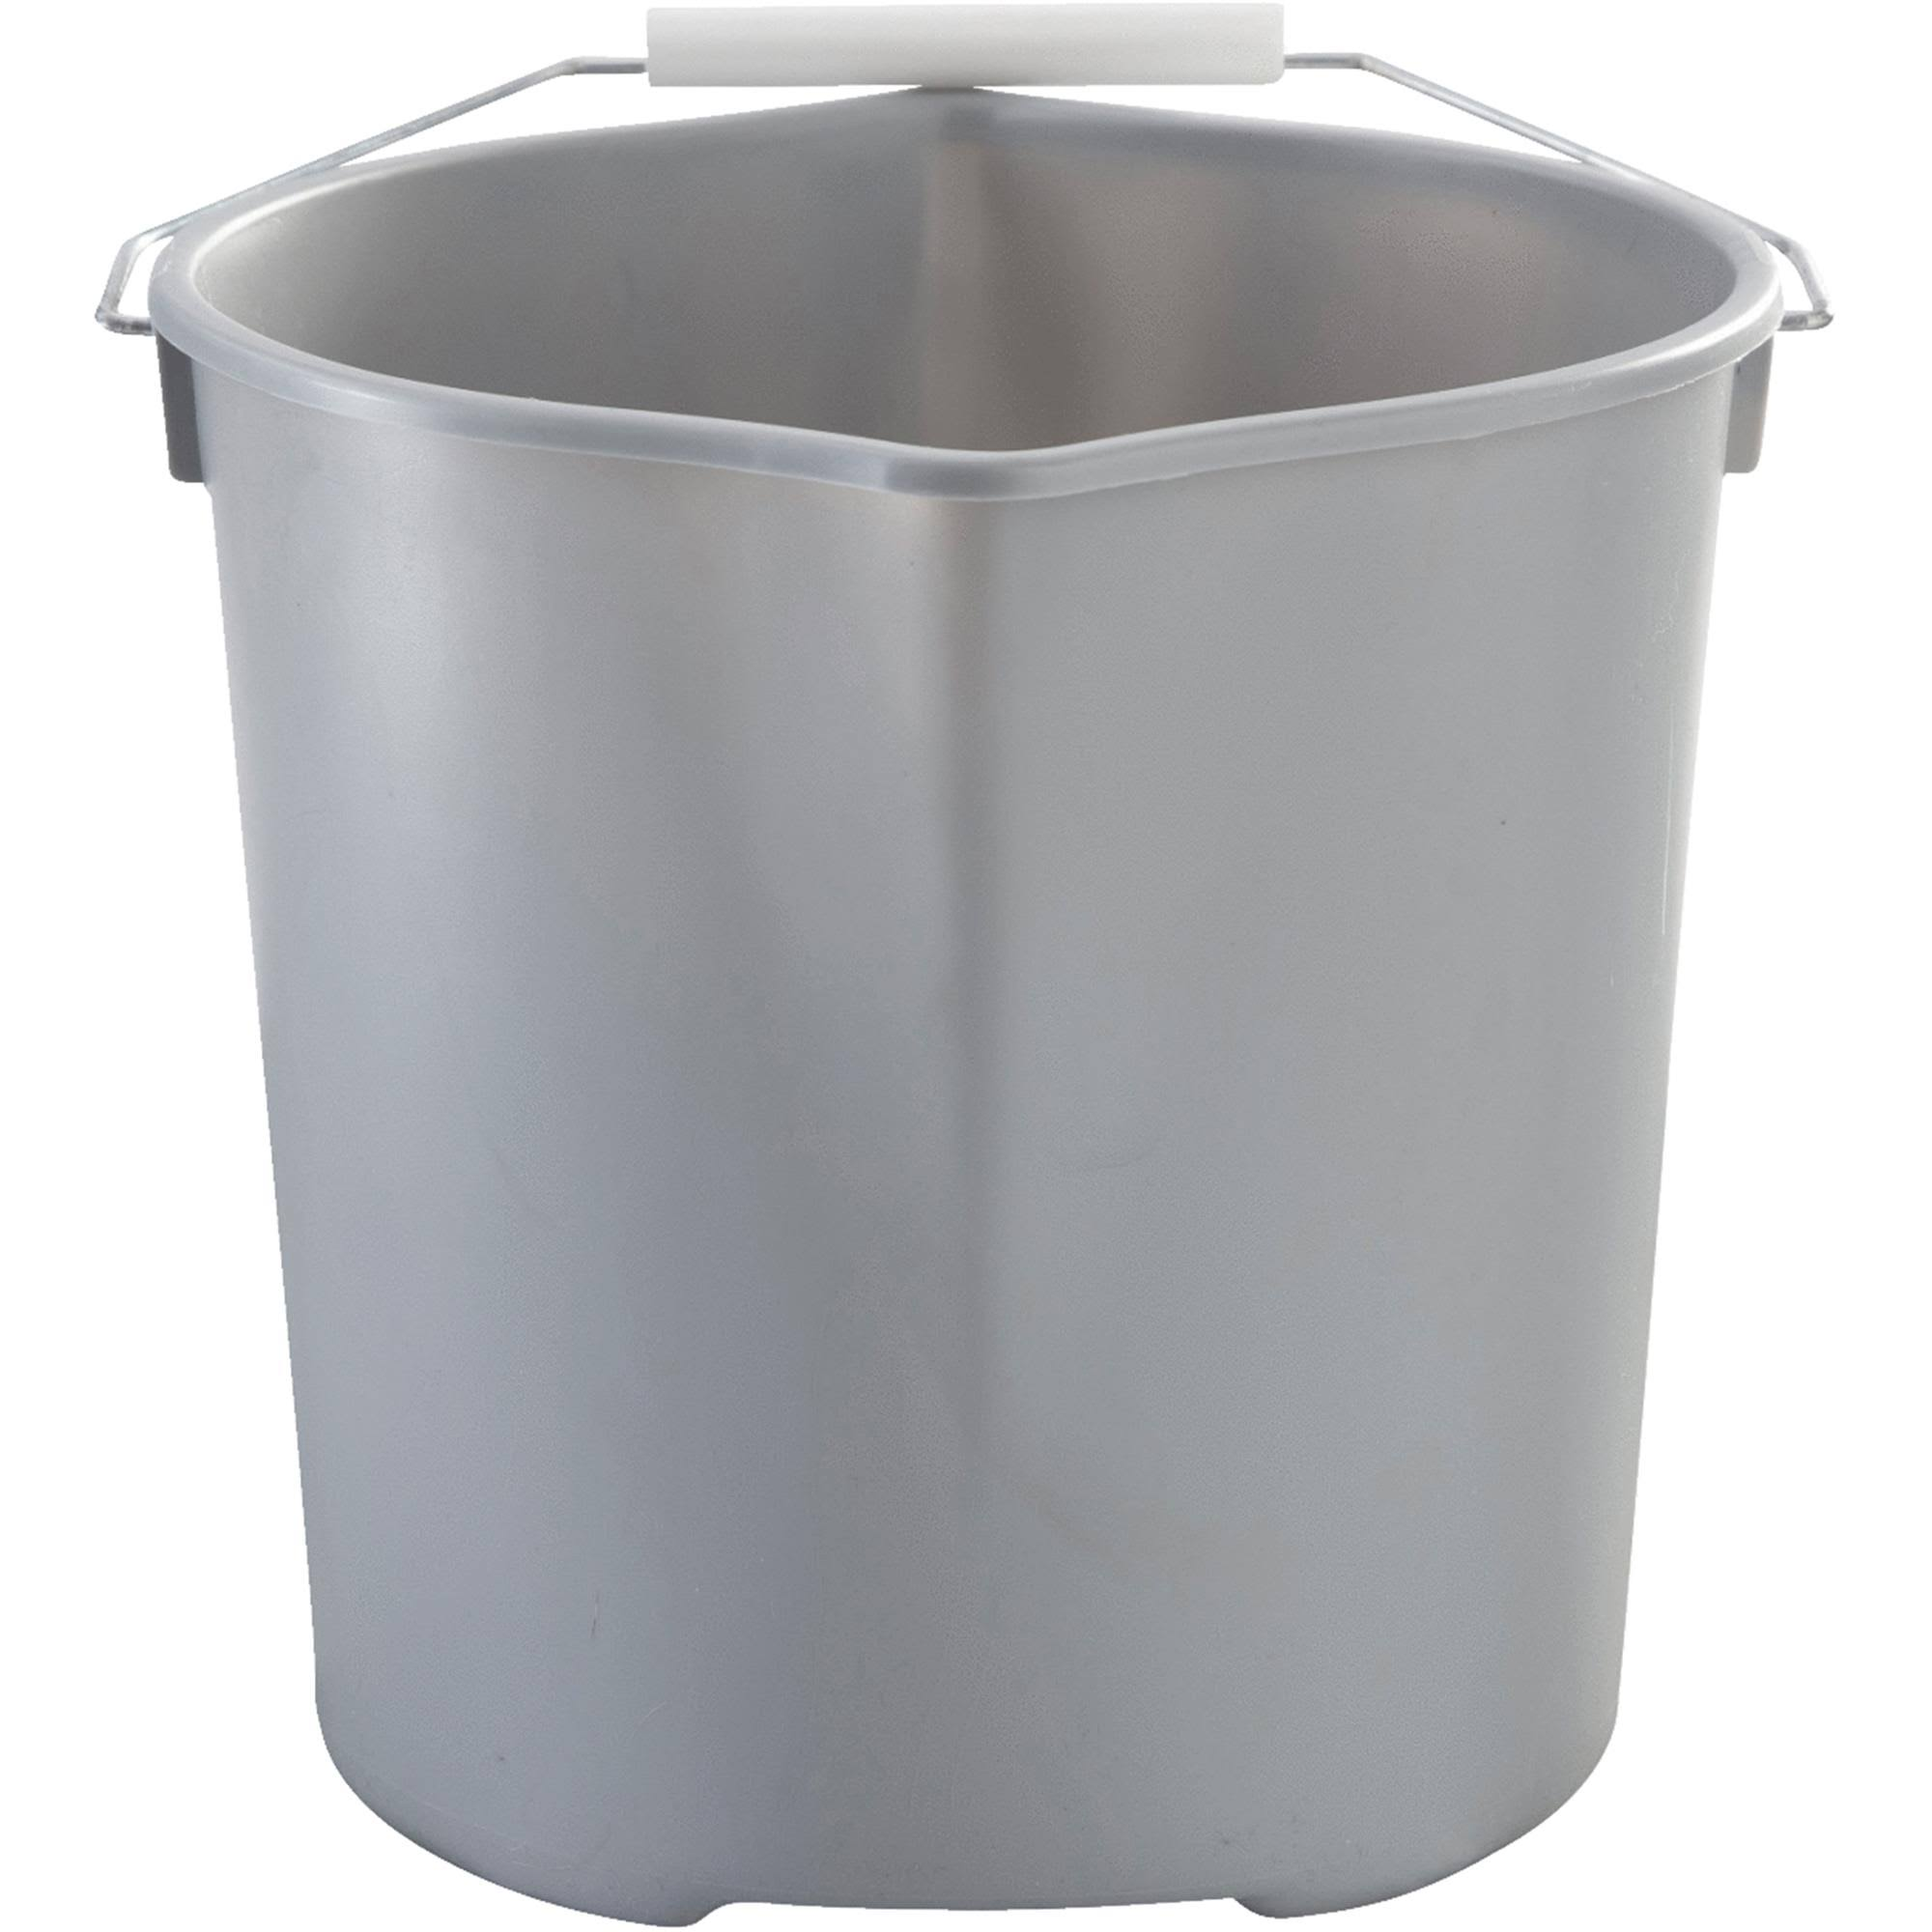 Quickie 2077957 Bucket, Grey, 11 Quart